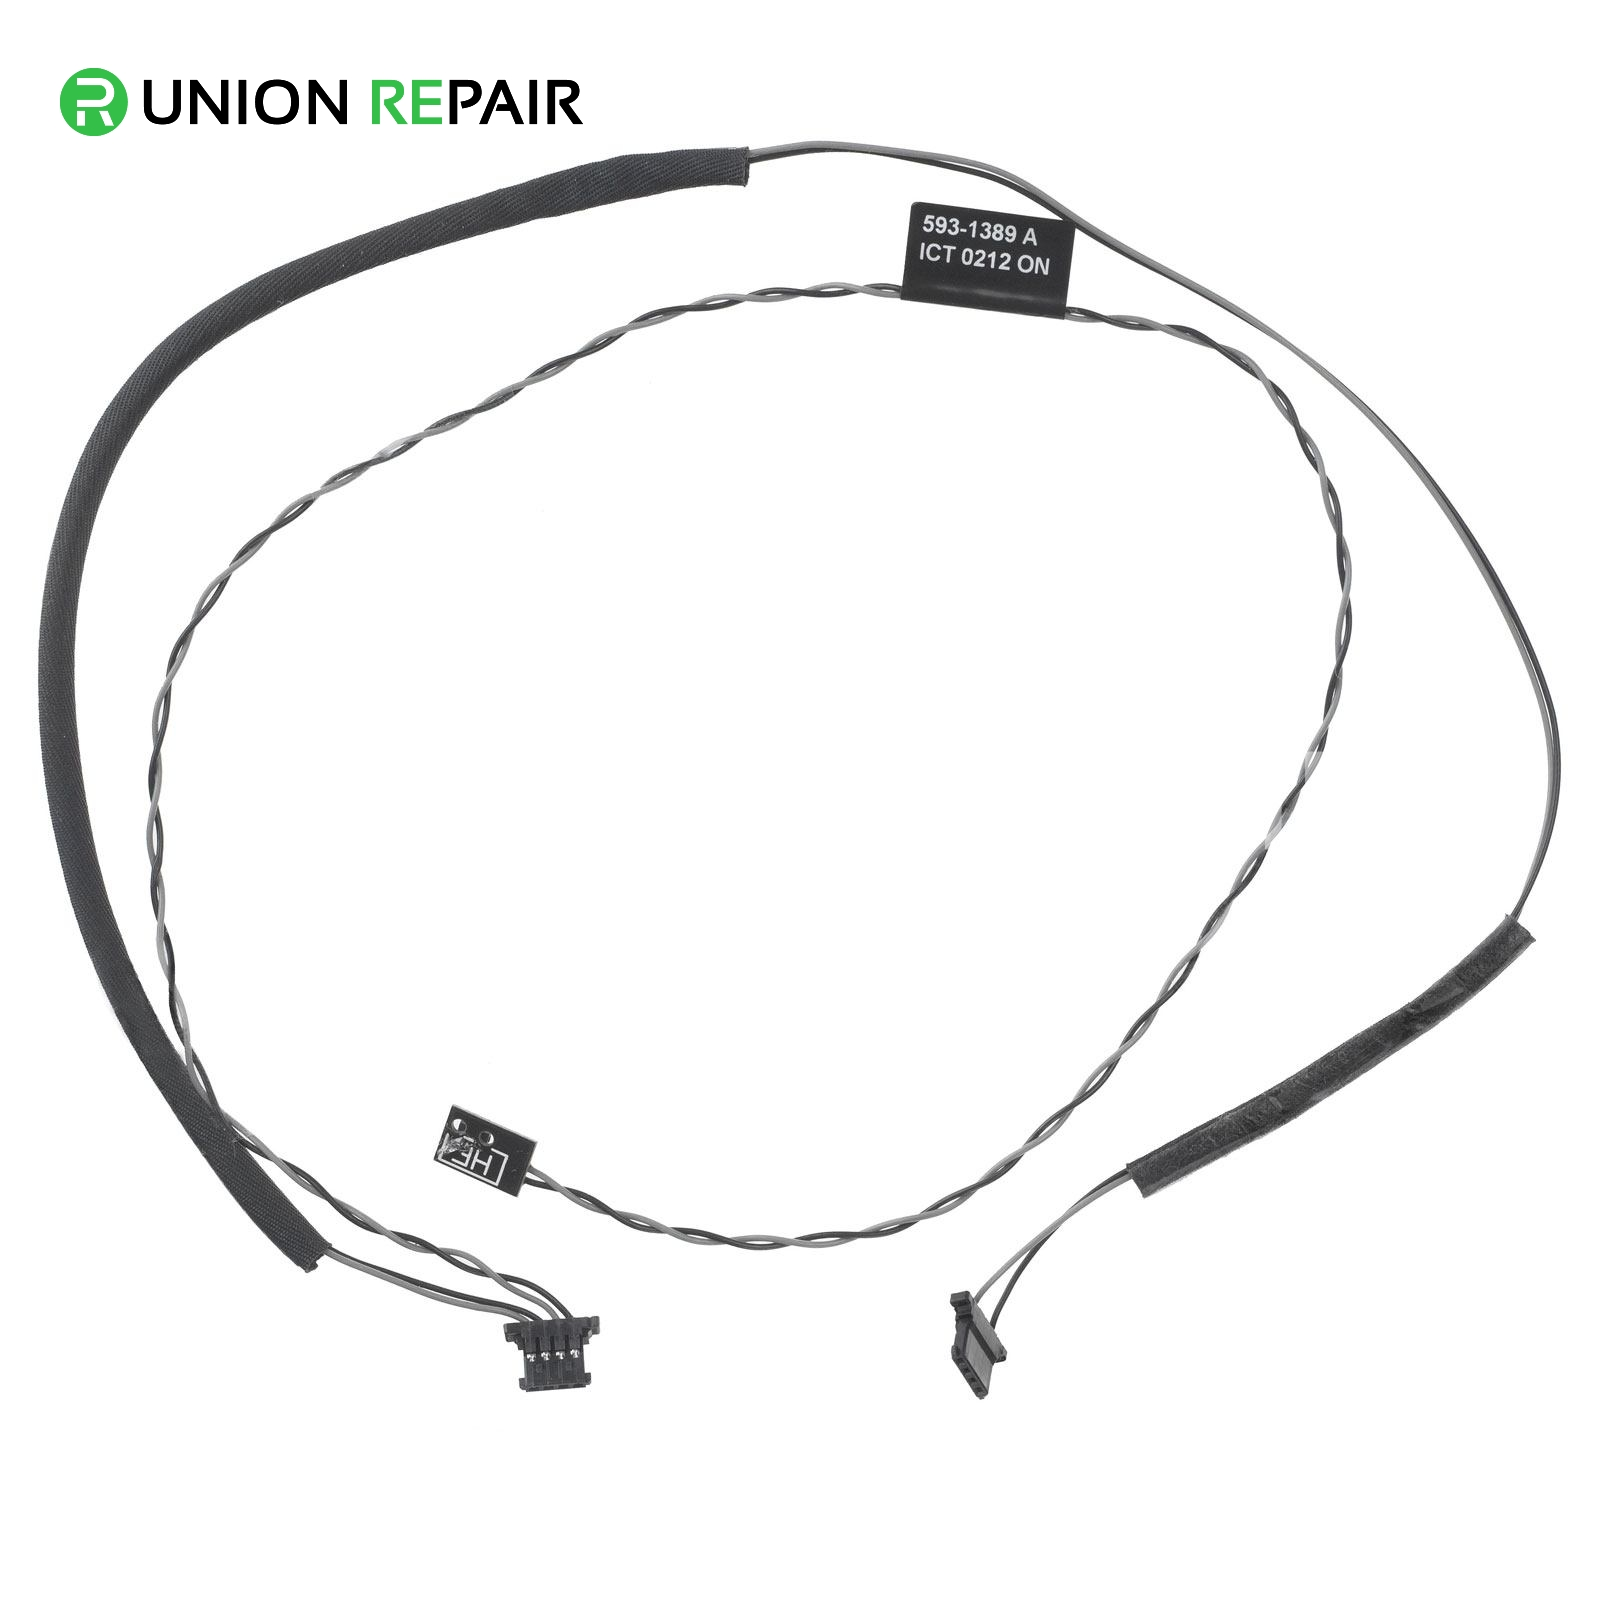 """LVDS V-Sync Temperature Cable for iMac 21.5"""" A1311 (Mid 2011 - Late 2011)"""